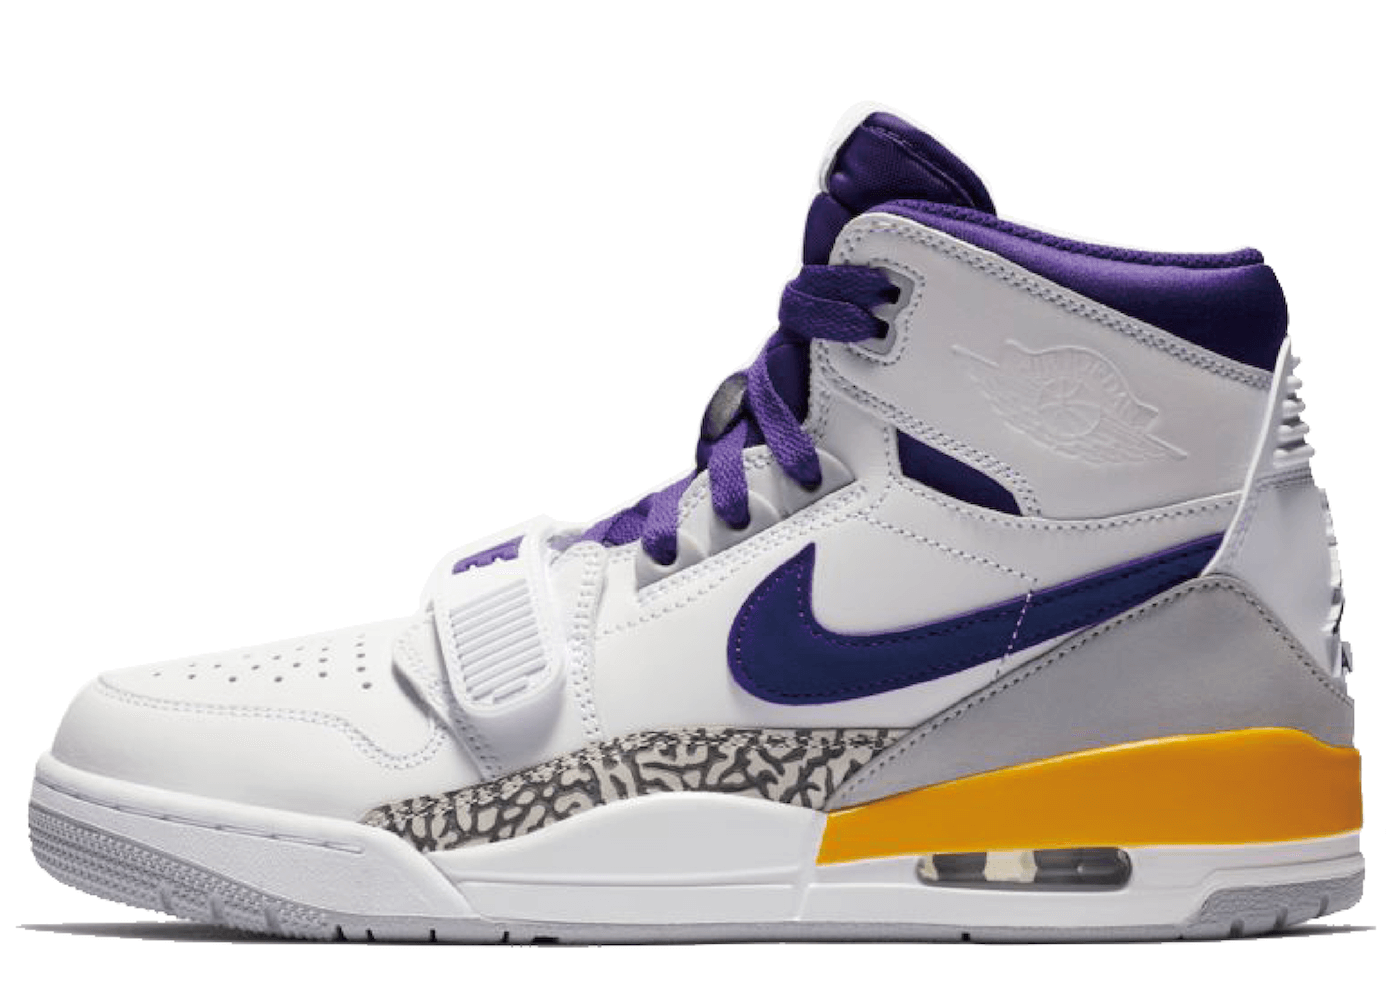 Nike Air Jordan Legacy 312 Field Purple Amarillo Whiteの写真